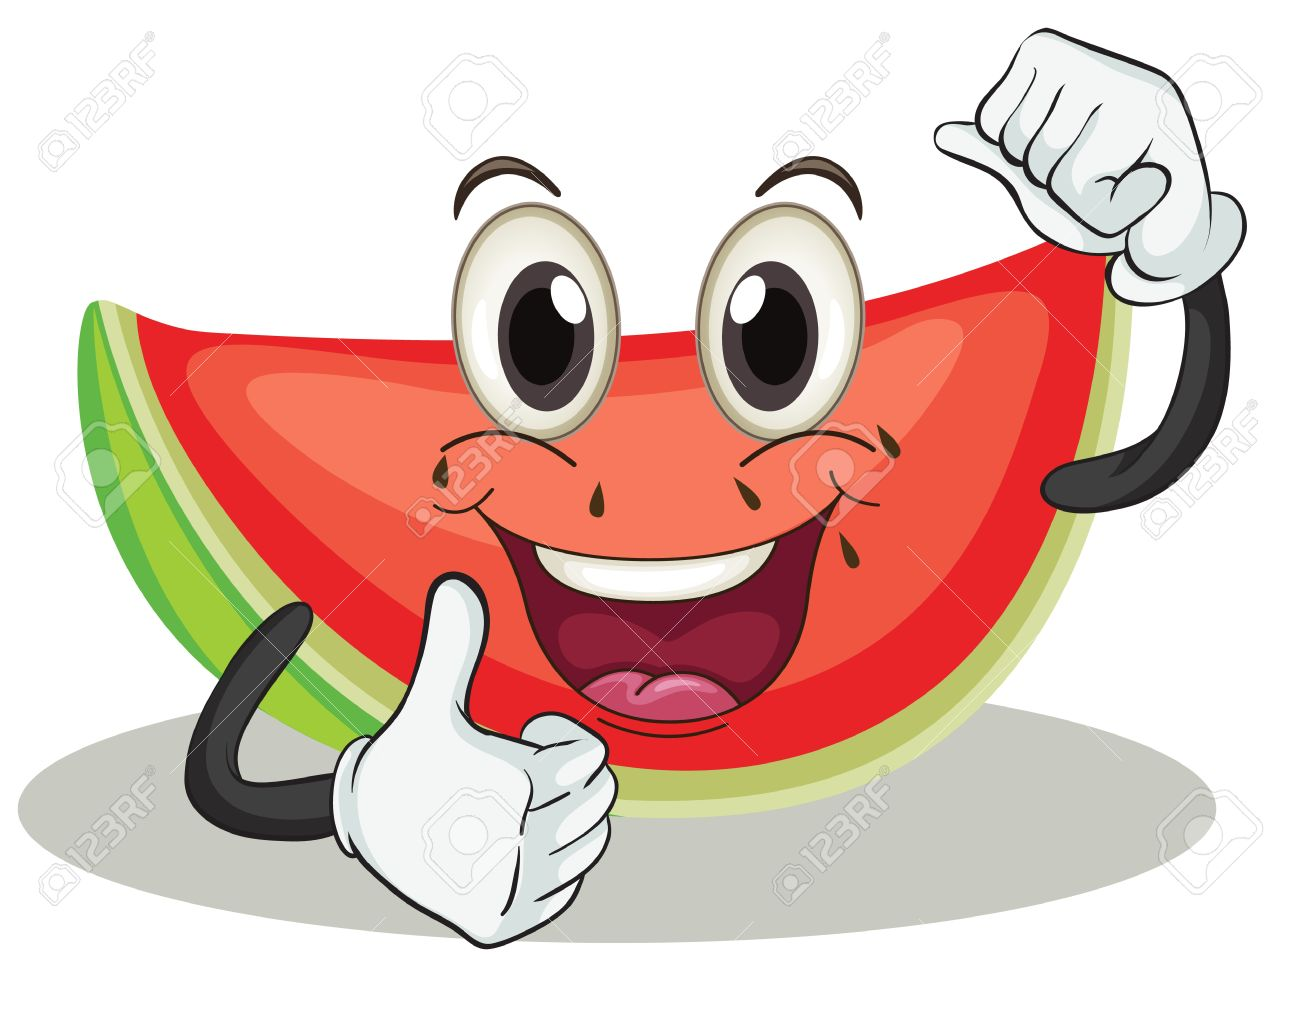 1,131 Watermelon Clipart Stock Vector Illustration And Royalty.